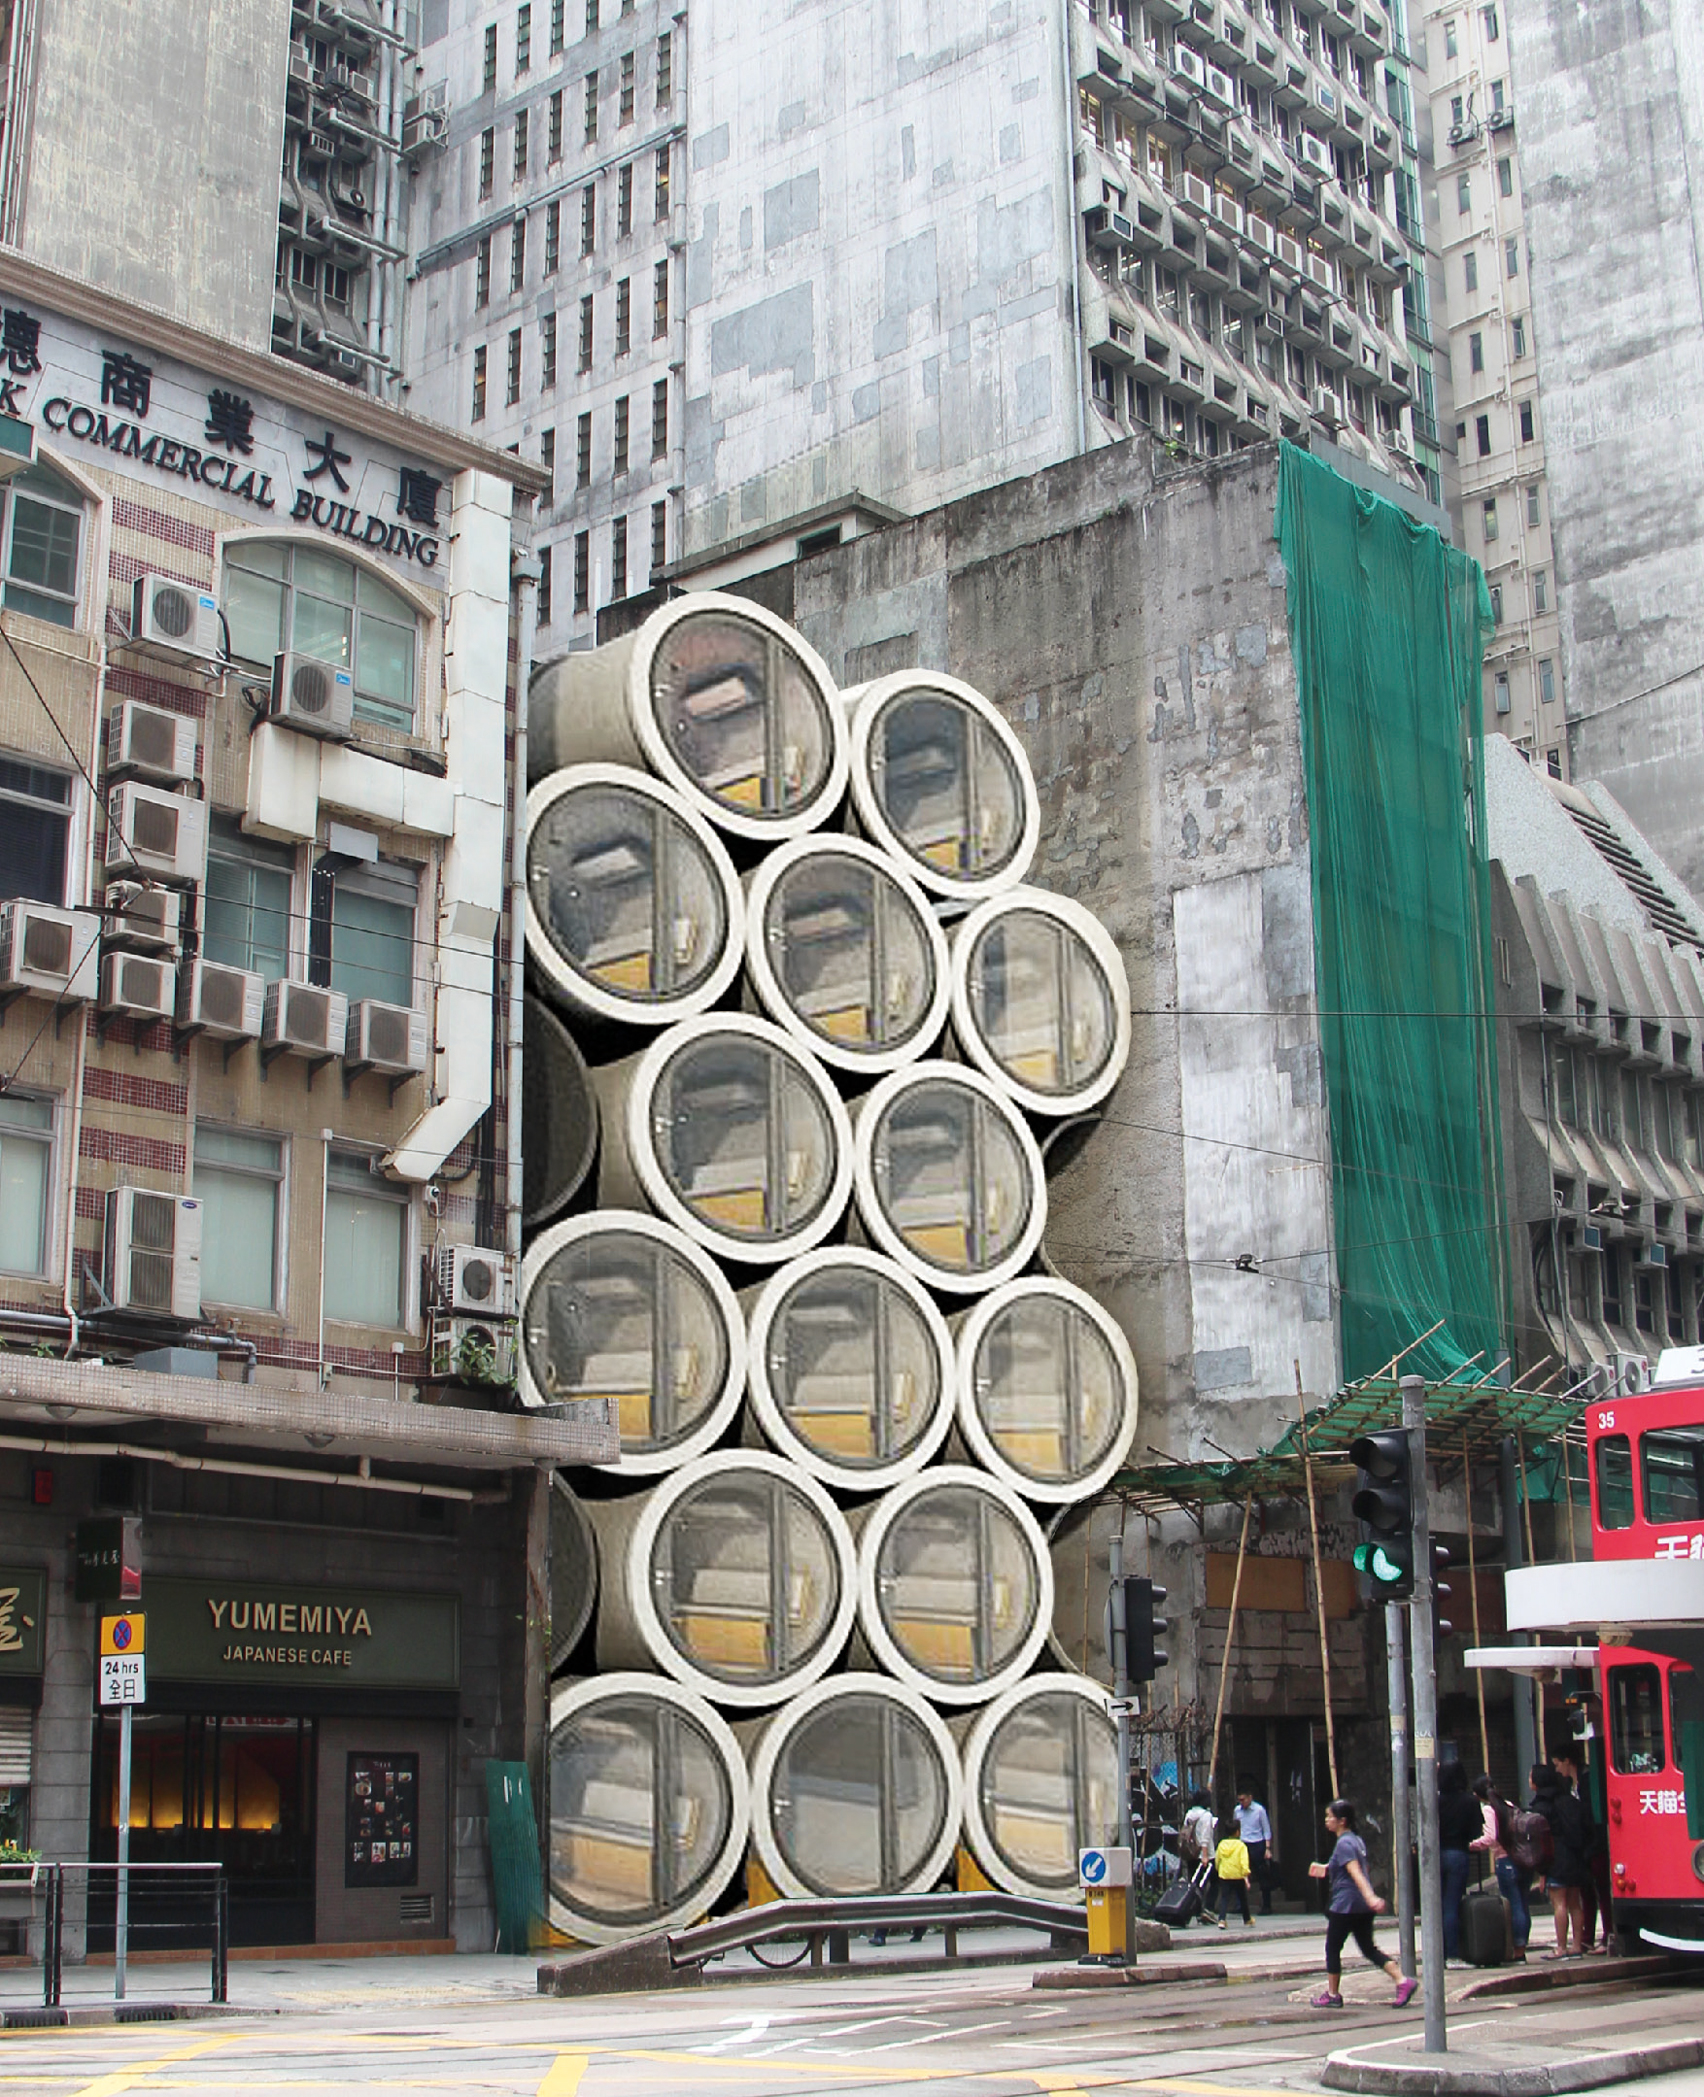 Micro homes inside water pipes could take advantage of unused urban space